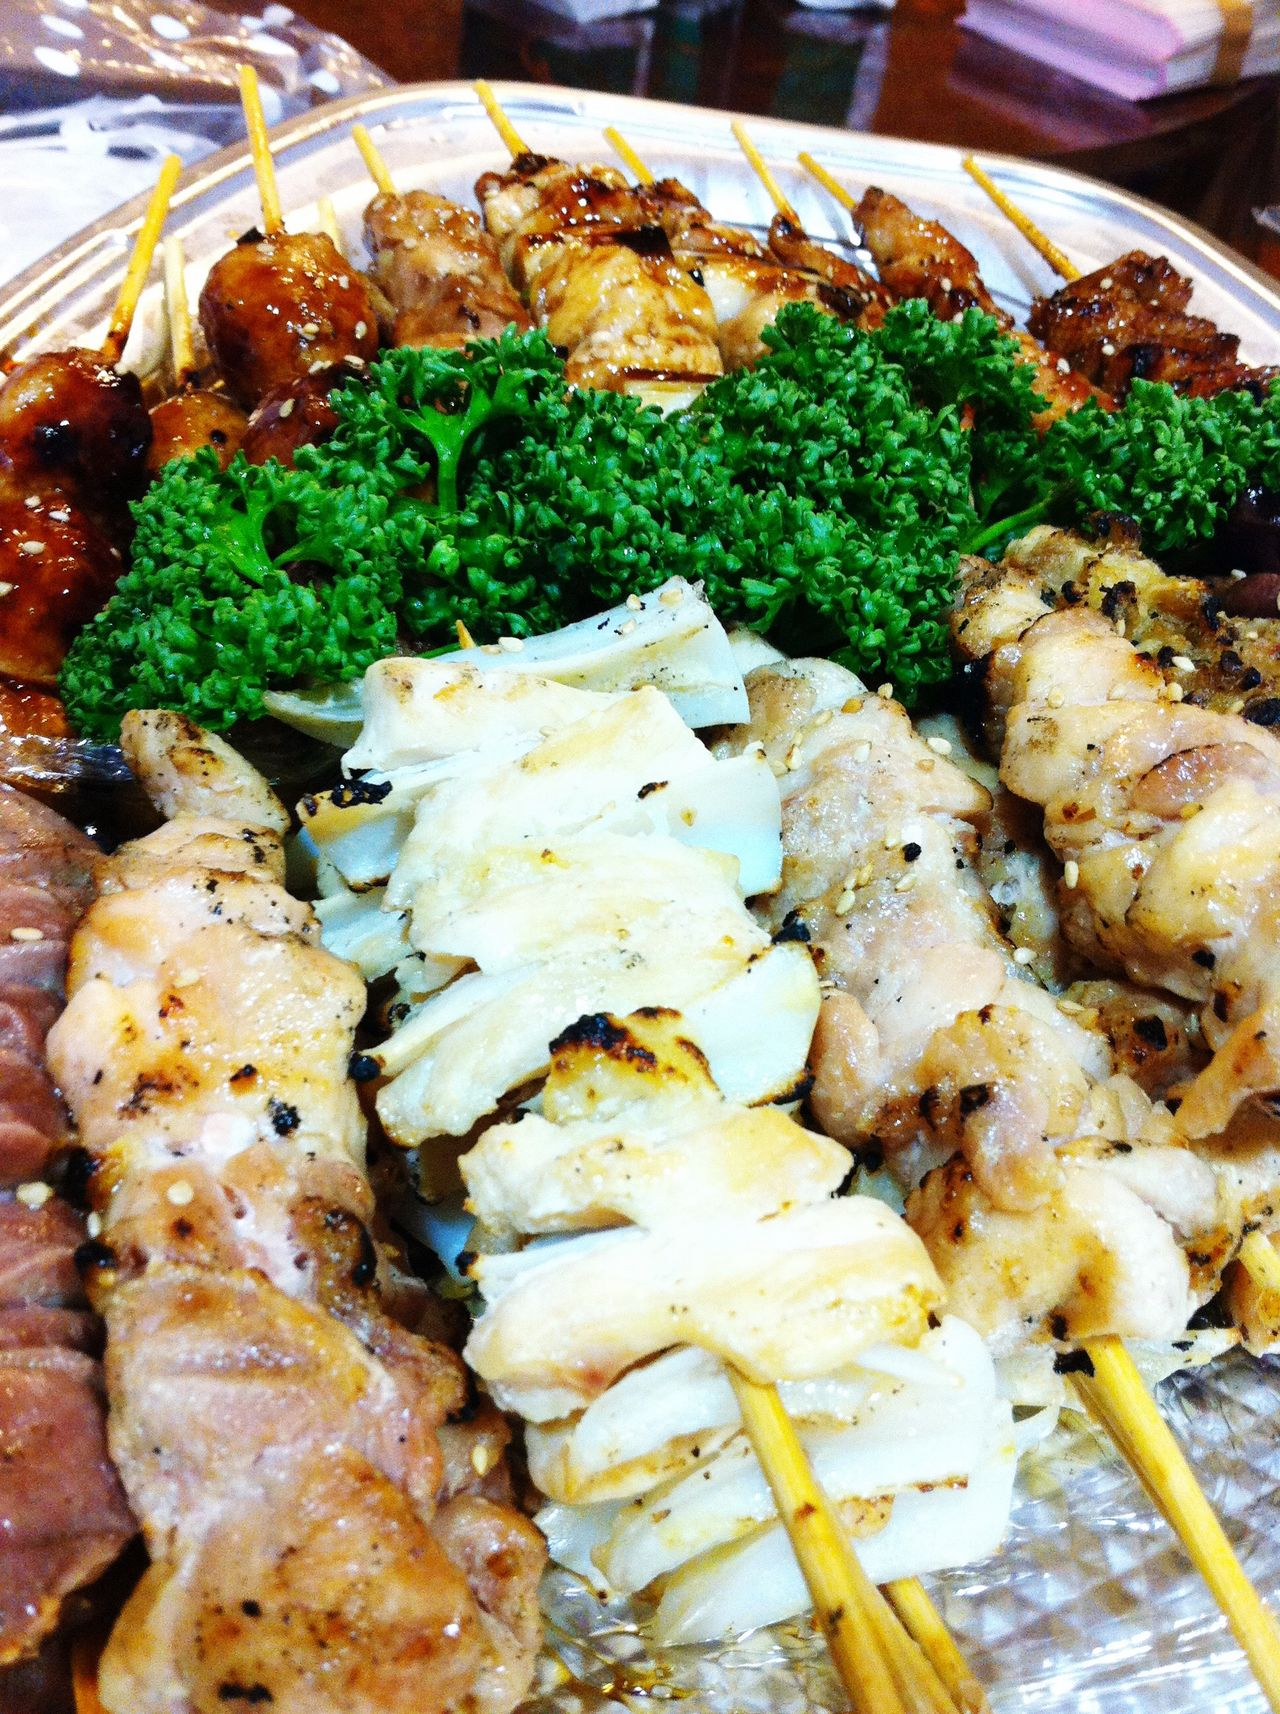 Yakitori are grilled chicken skewers. 焼き鳥 やきとり Takitori Food Japanese Food